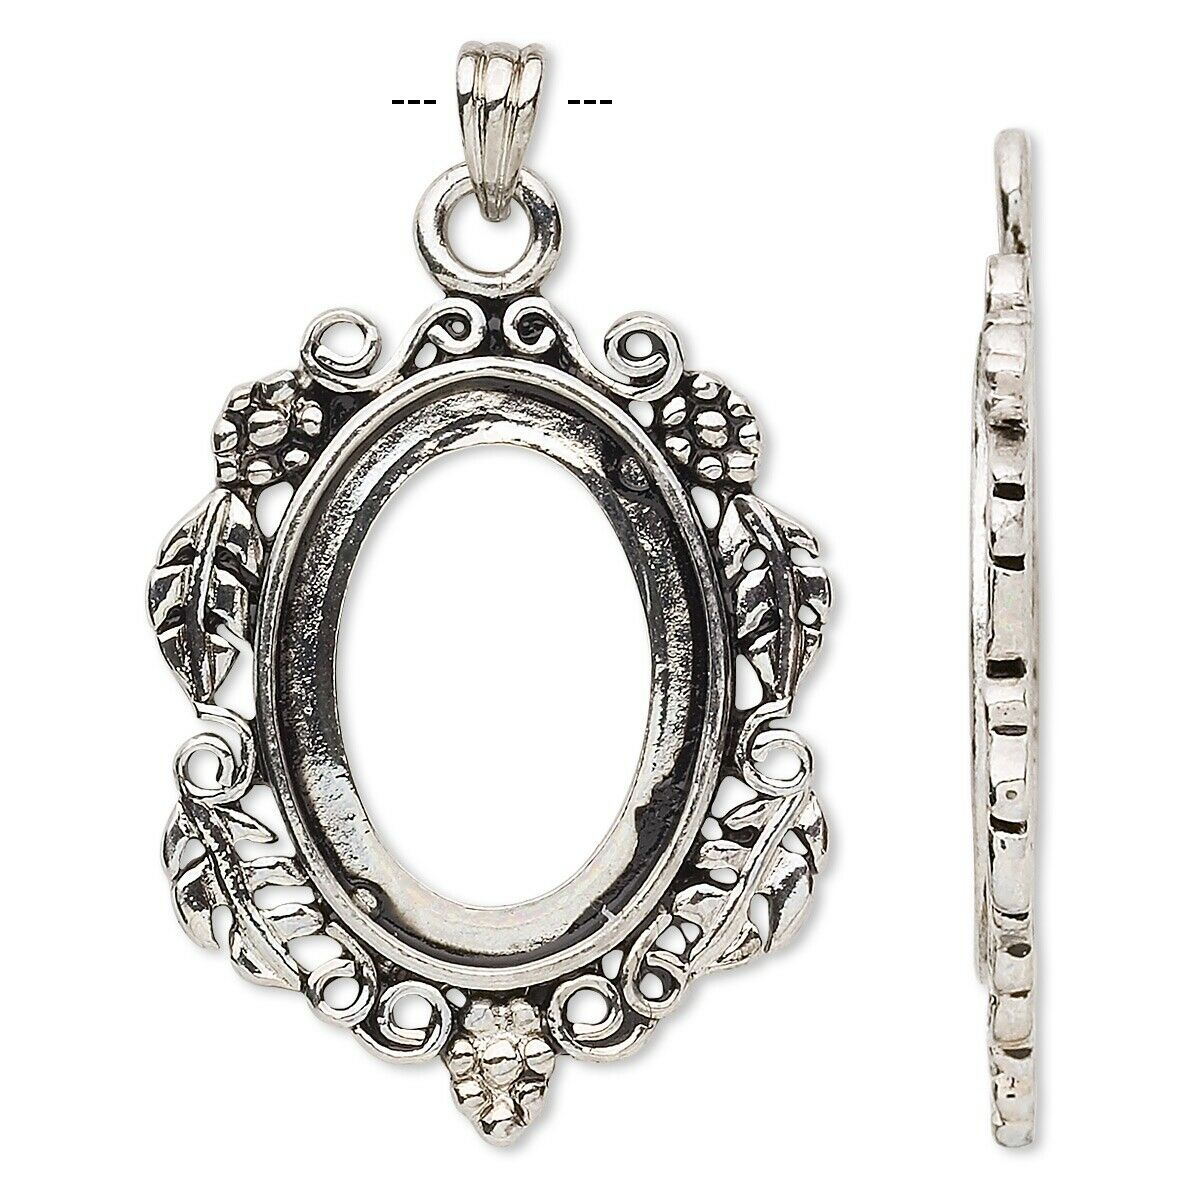 Antiqued Silver Plated Brass Pendant Setting for 25x18mm Oval Cabochon or Cameo